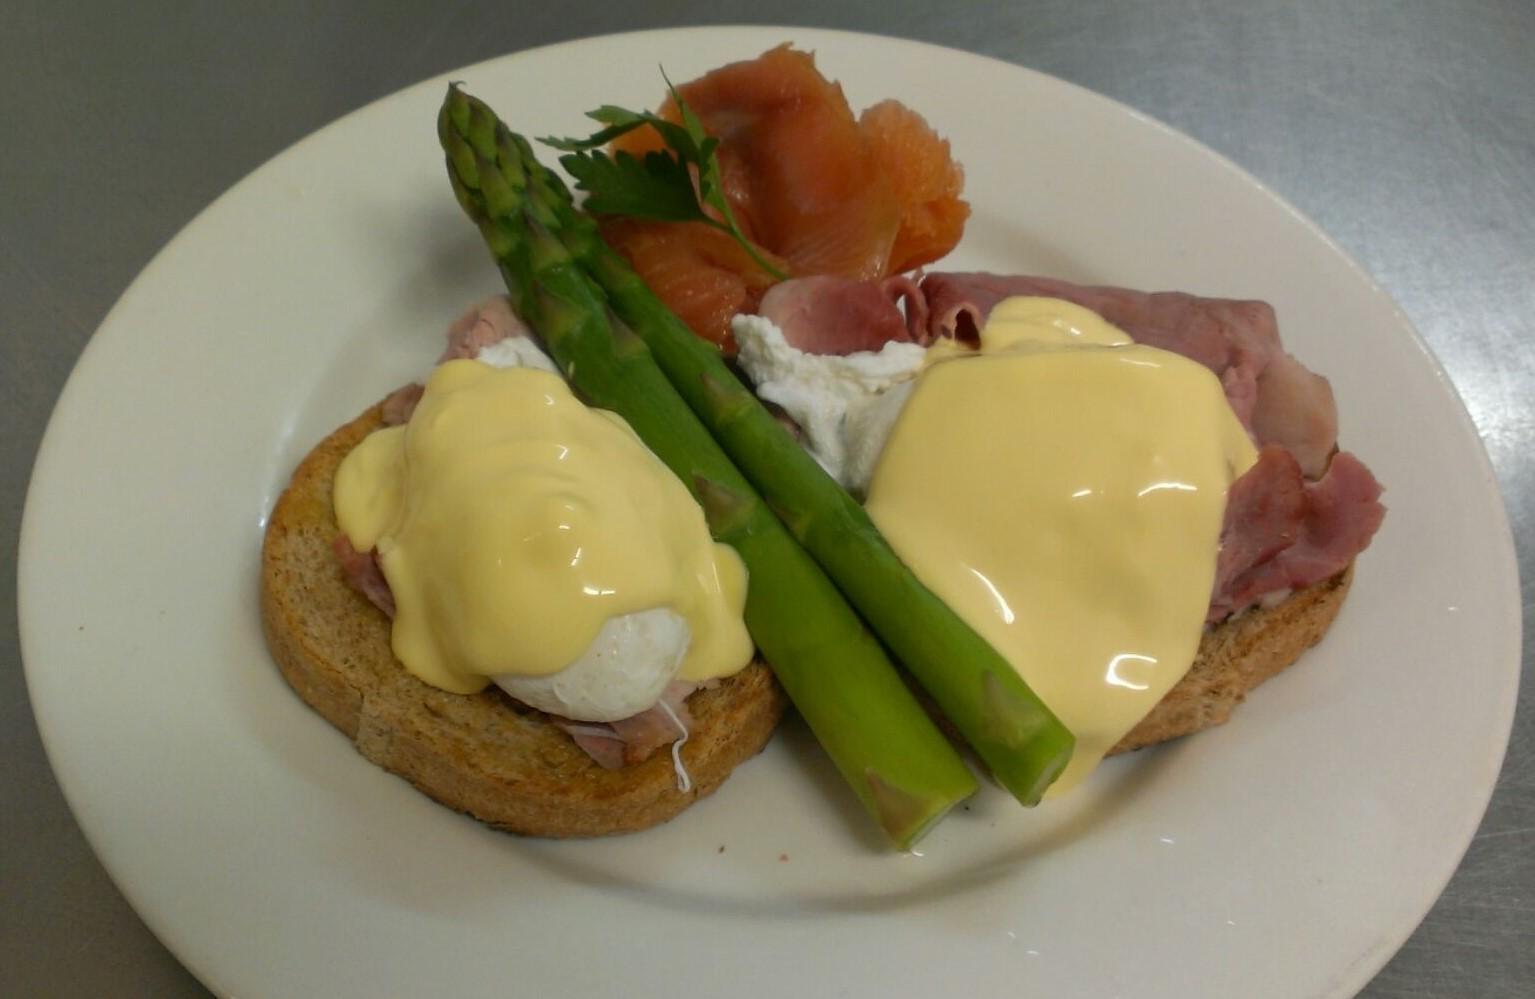 House of Anvers Cafe Eggs benedict